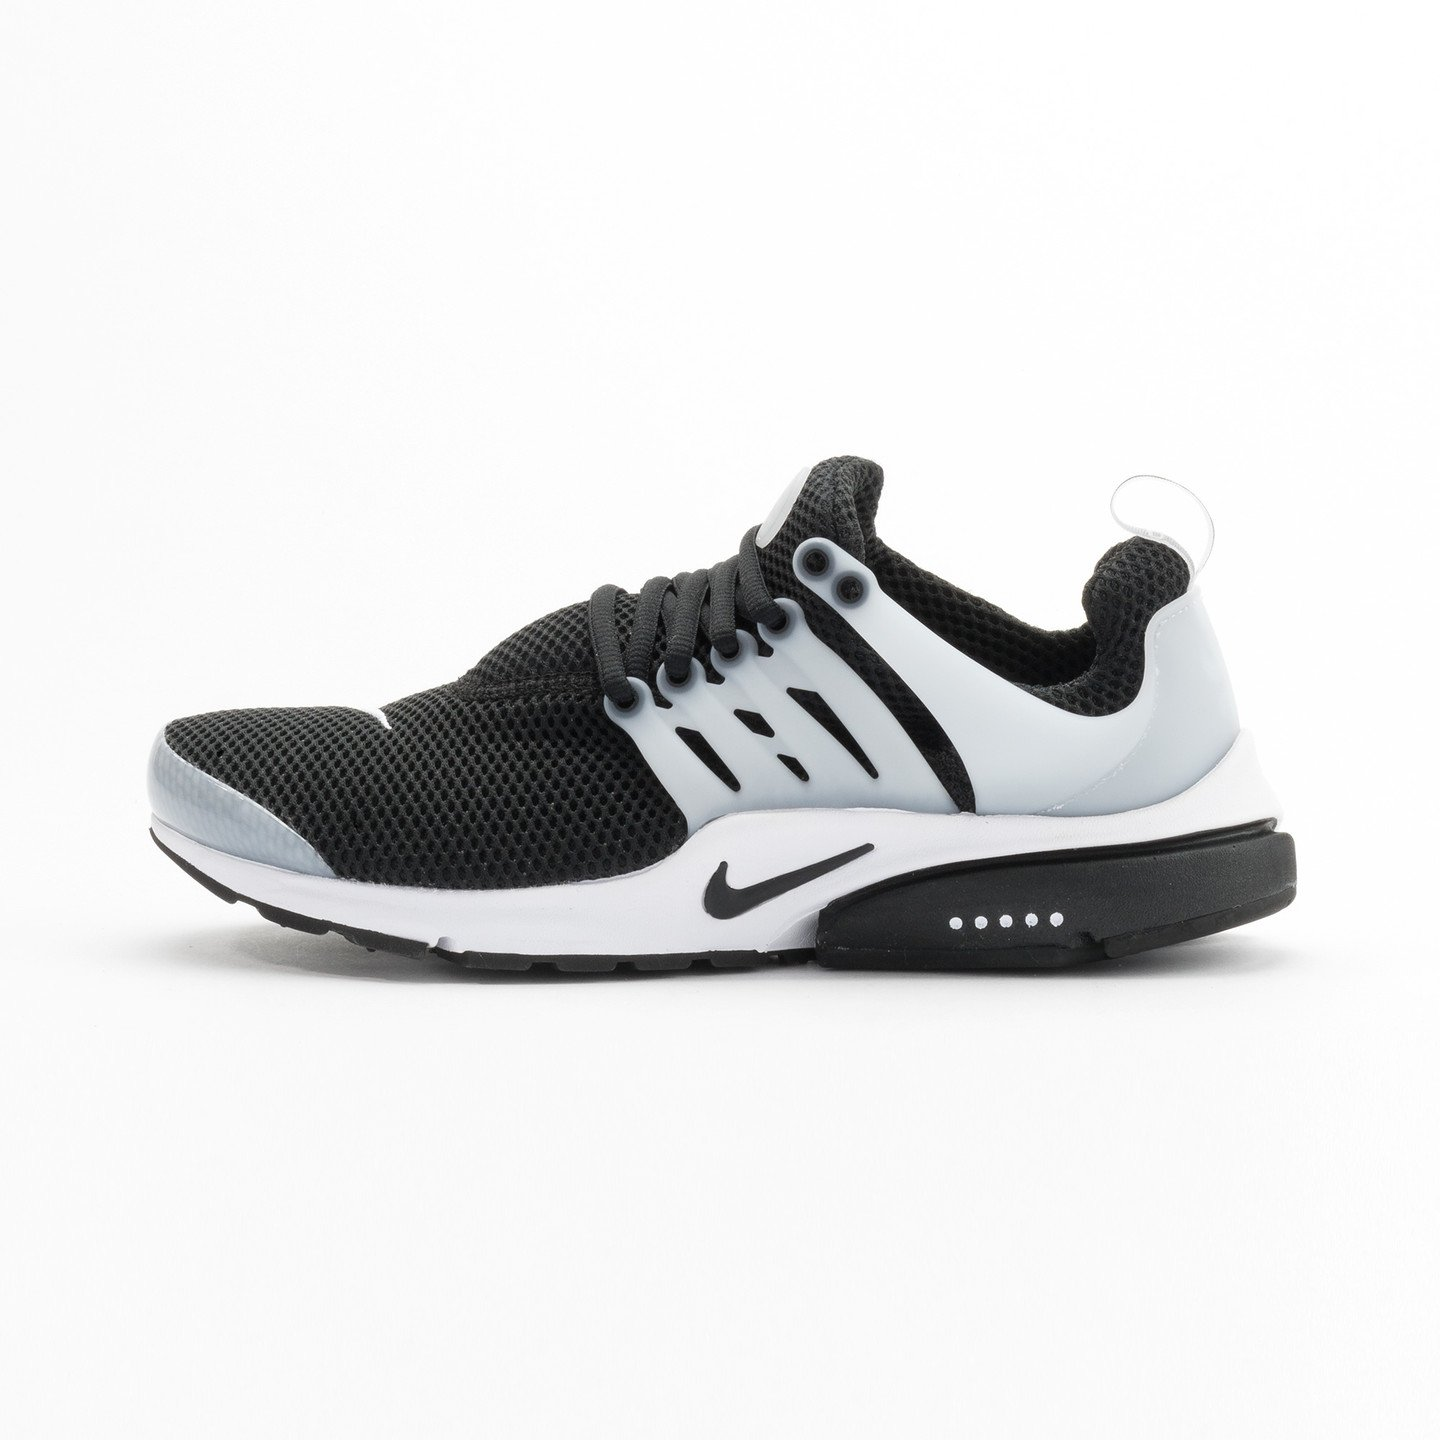 Nike Air Presto Flyknit Ultra Black / White Shadow 848132-010-46